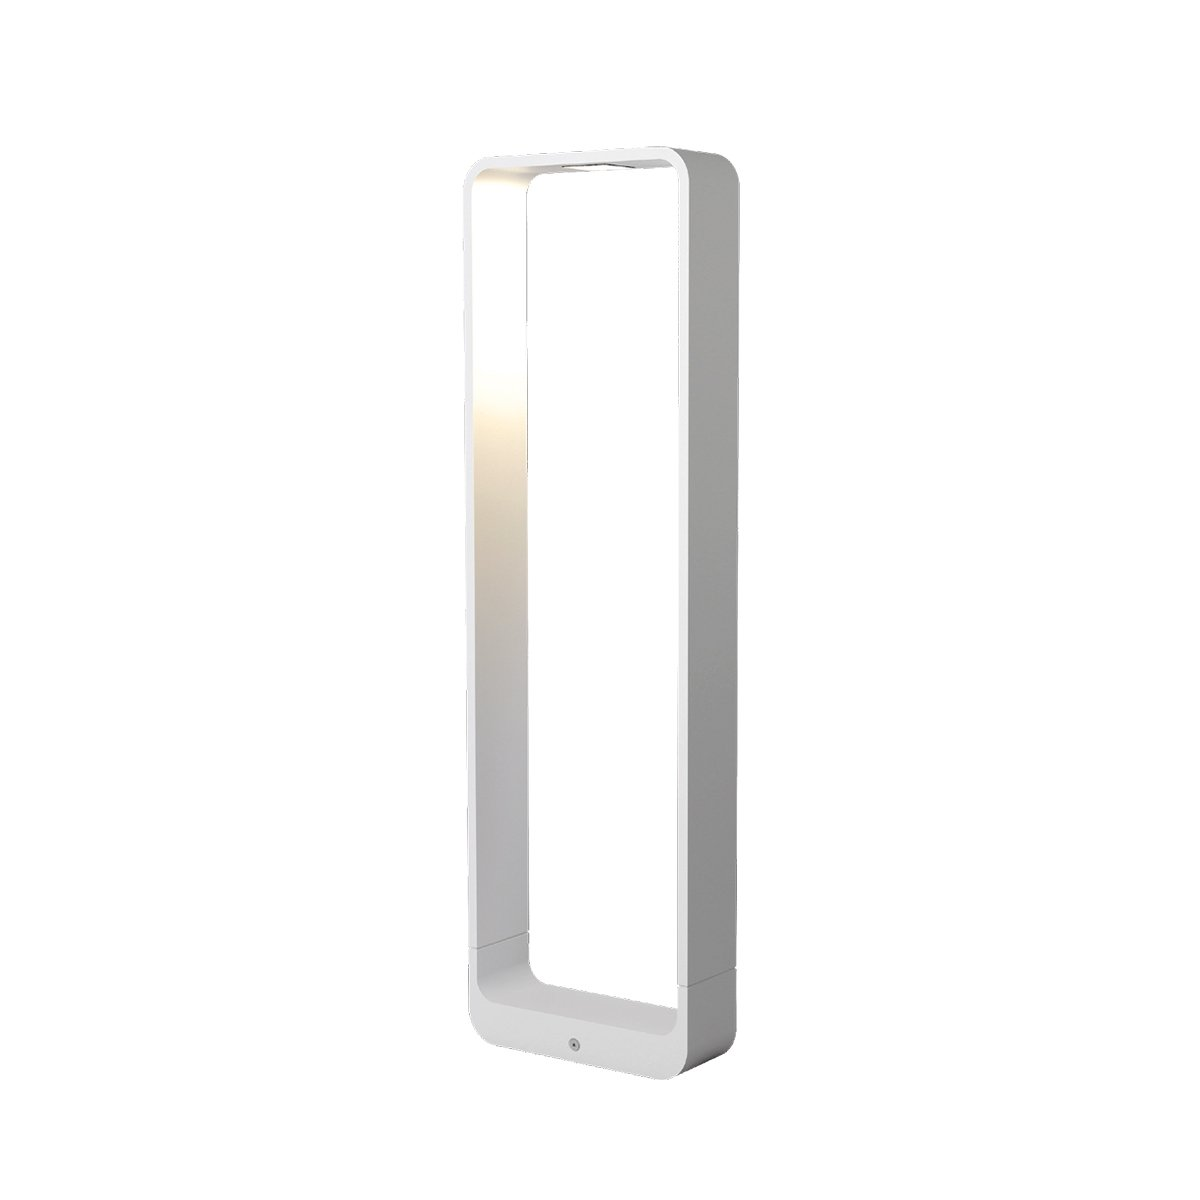 Wever & Ducr� Tape Outdoor Vloerlamp 6.0 - Wit